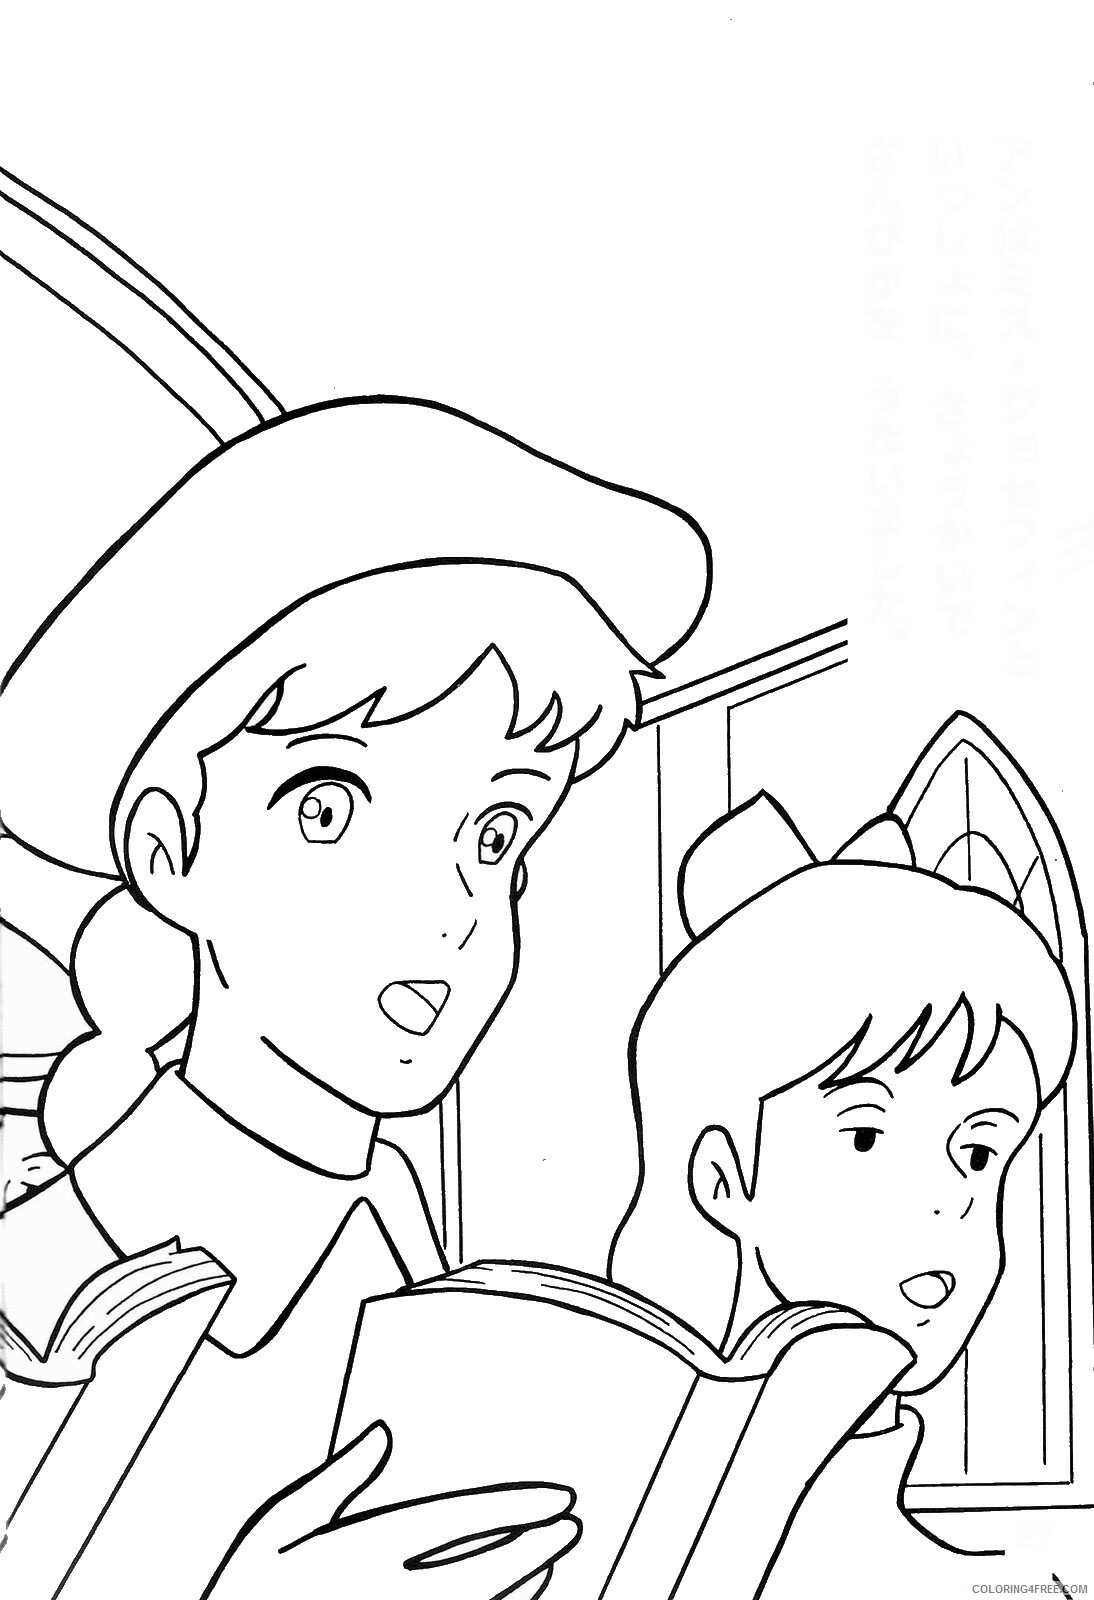 Anne of Green Gables Coloring Pages TV Film anne green gables 27 Printable 2020 00155 Coloring4free